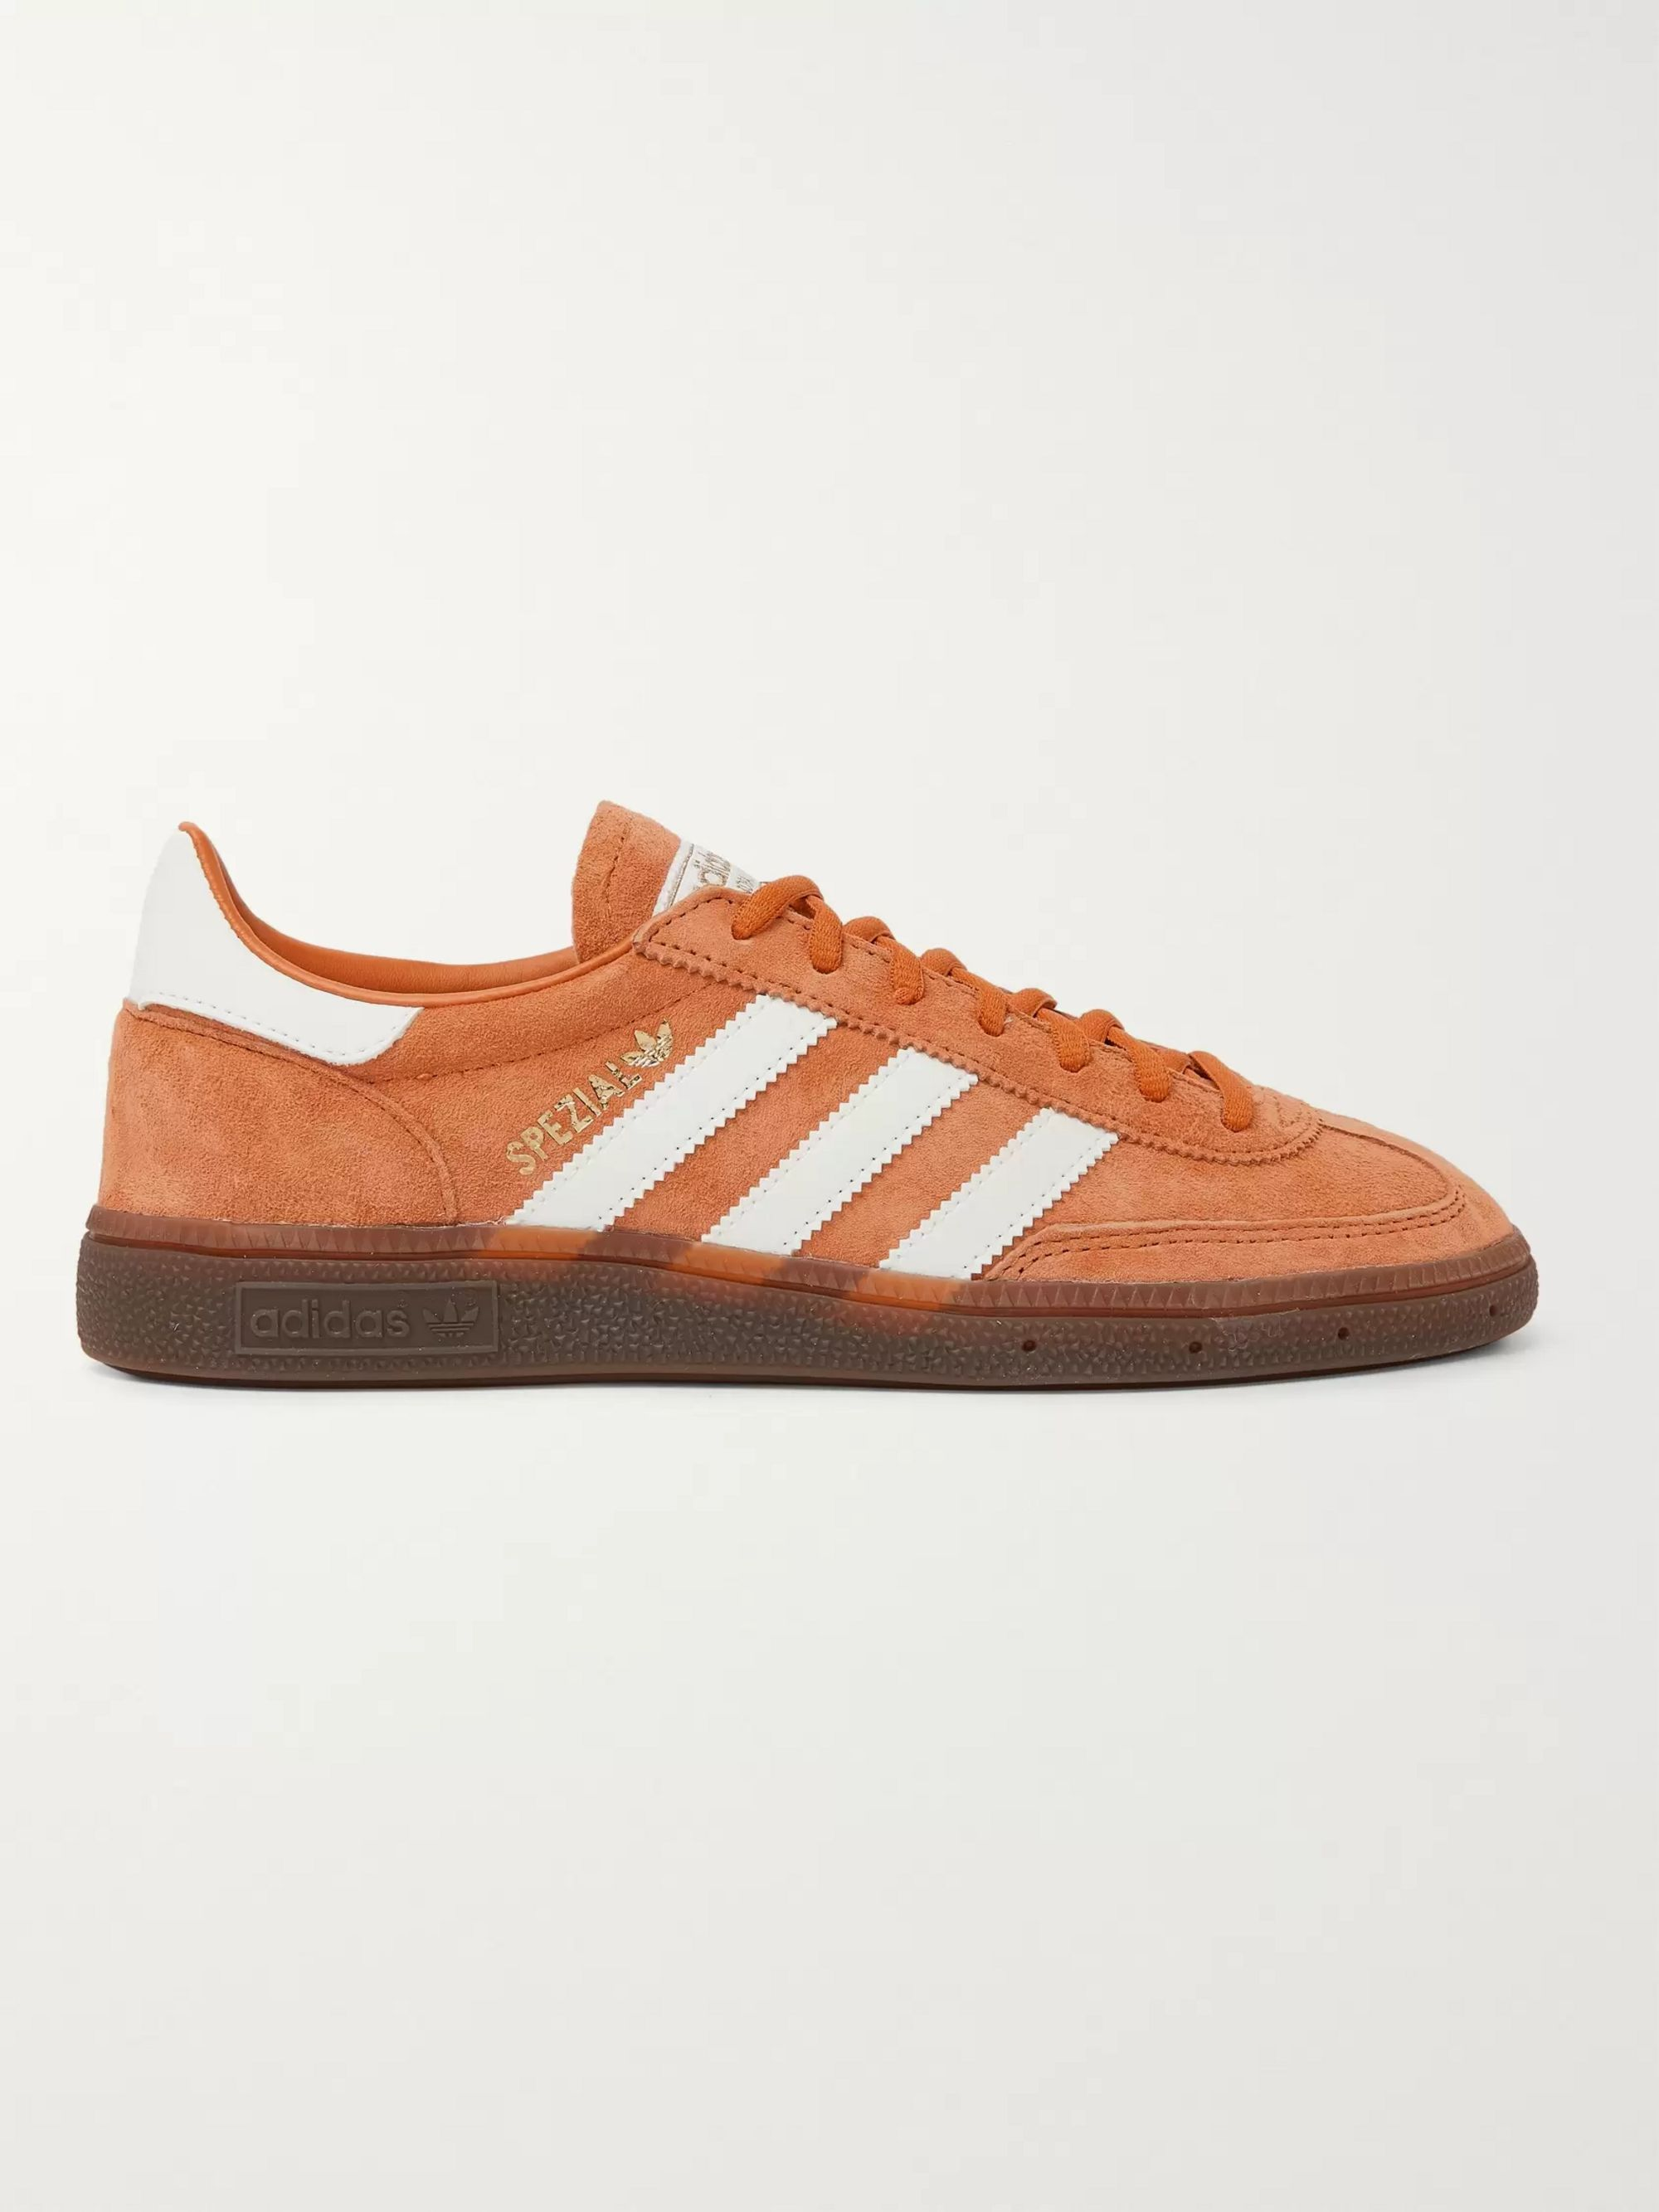 adidas Originals Handball Spezial Suede and Leather Sneakers